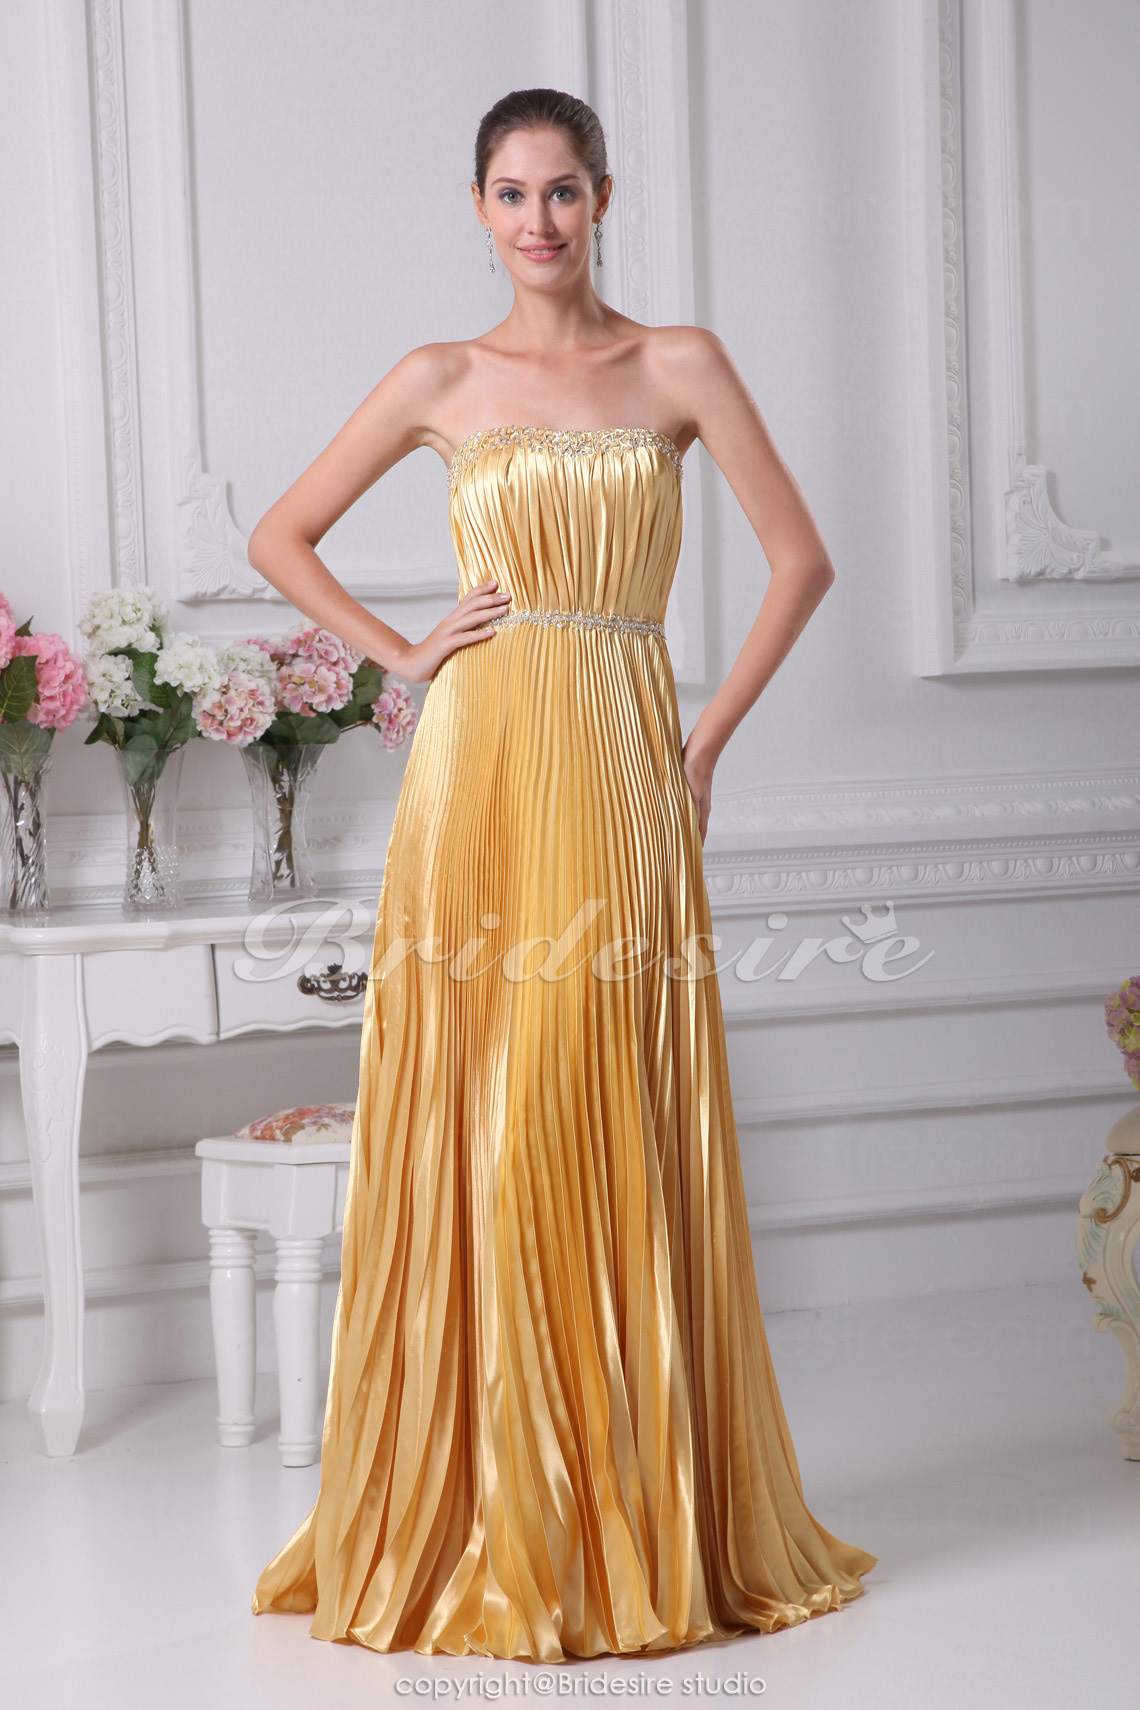 Sheath/Column Strapless Sweep Train Sleeveless Stretch Satin Dress